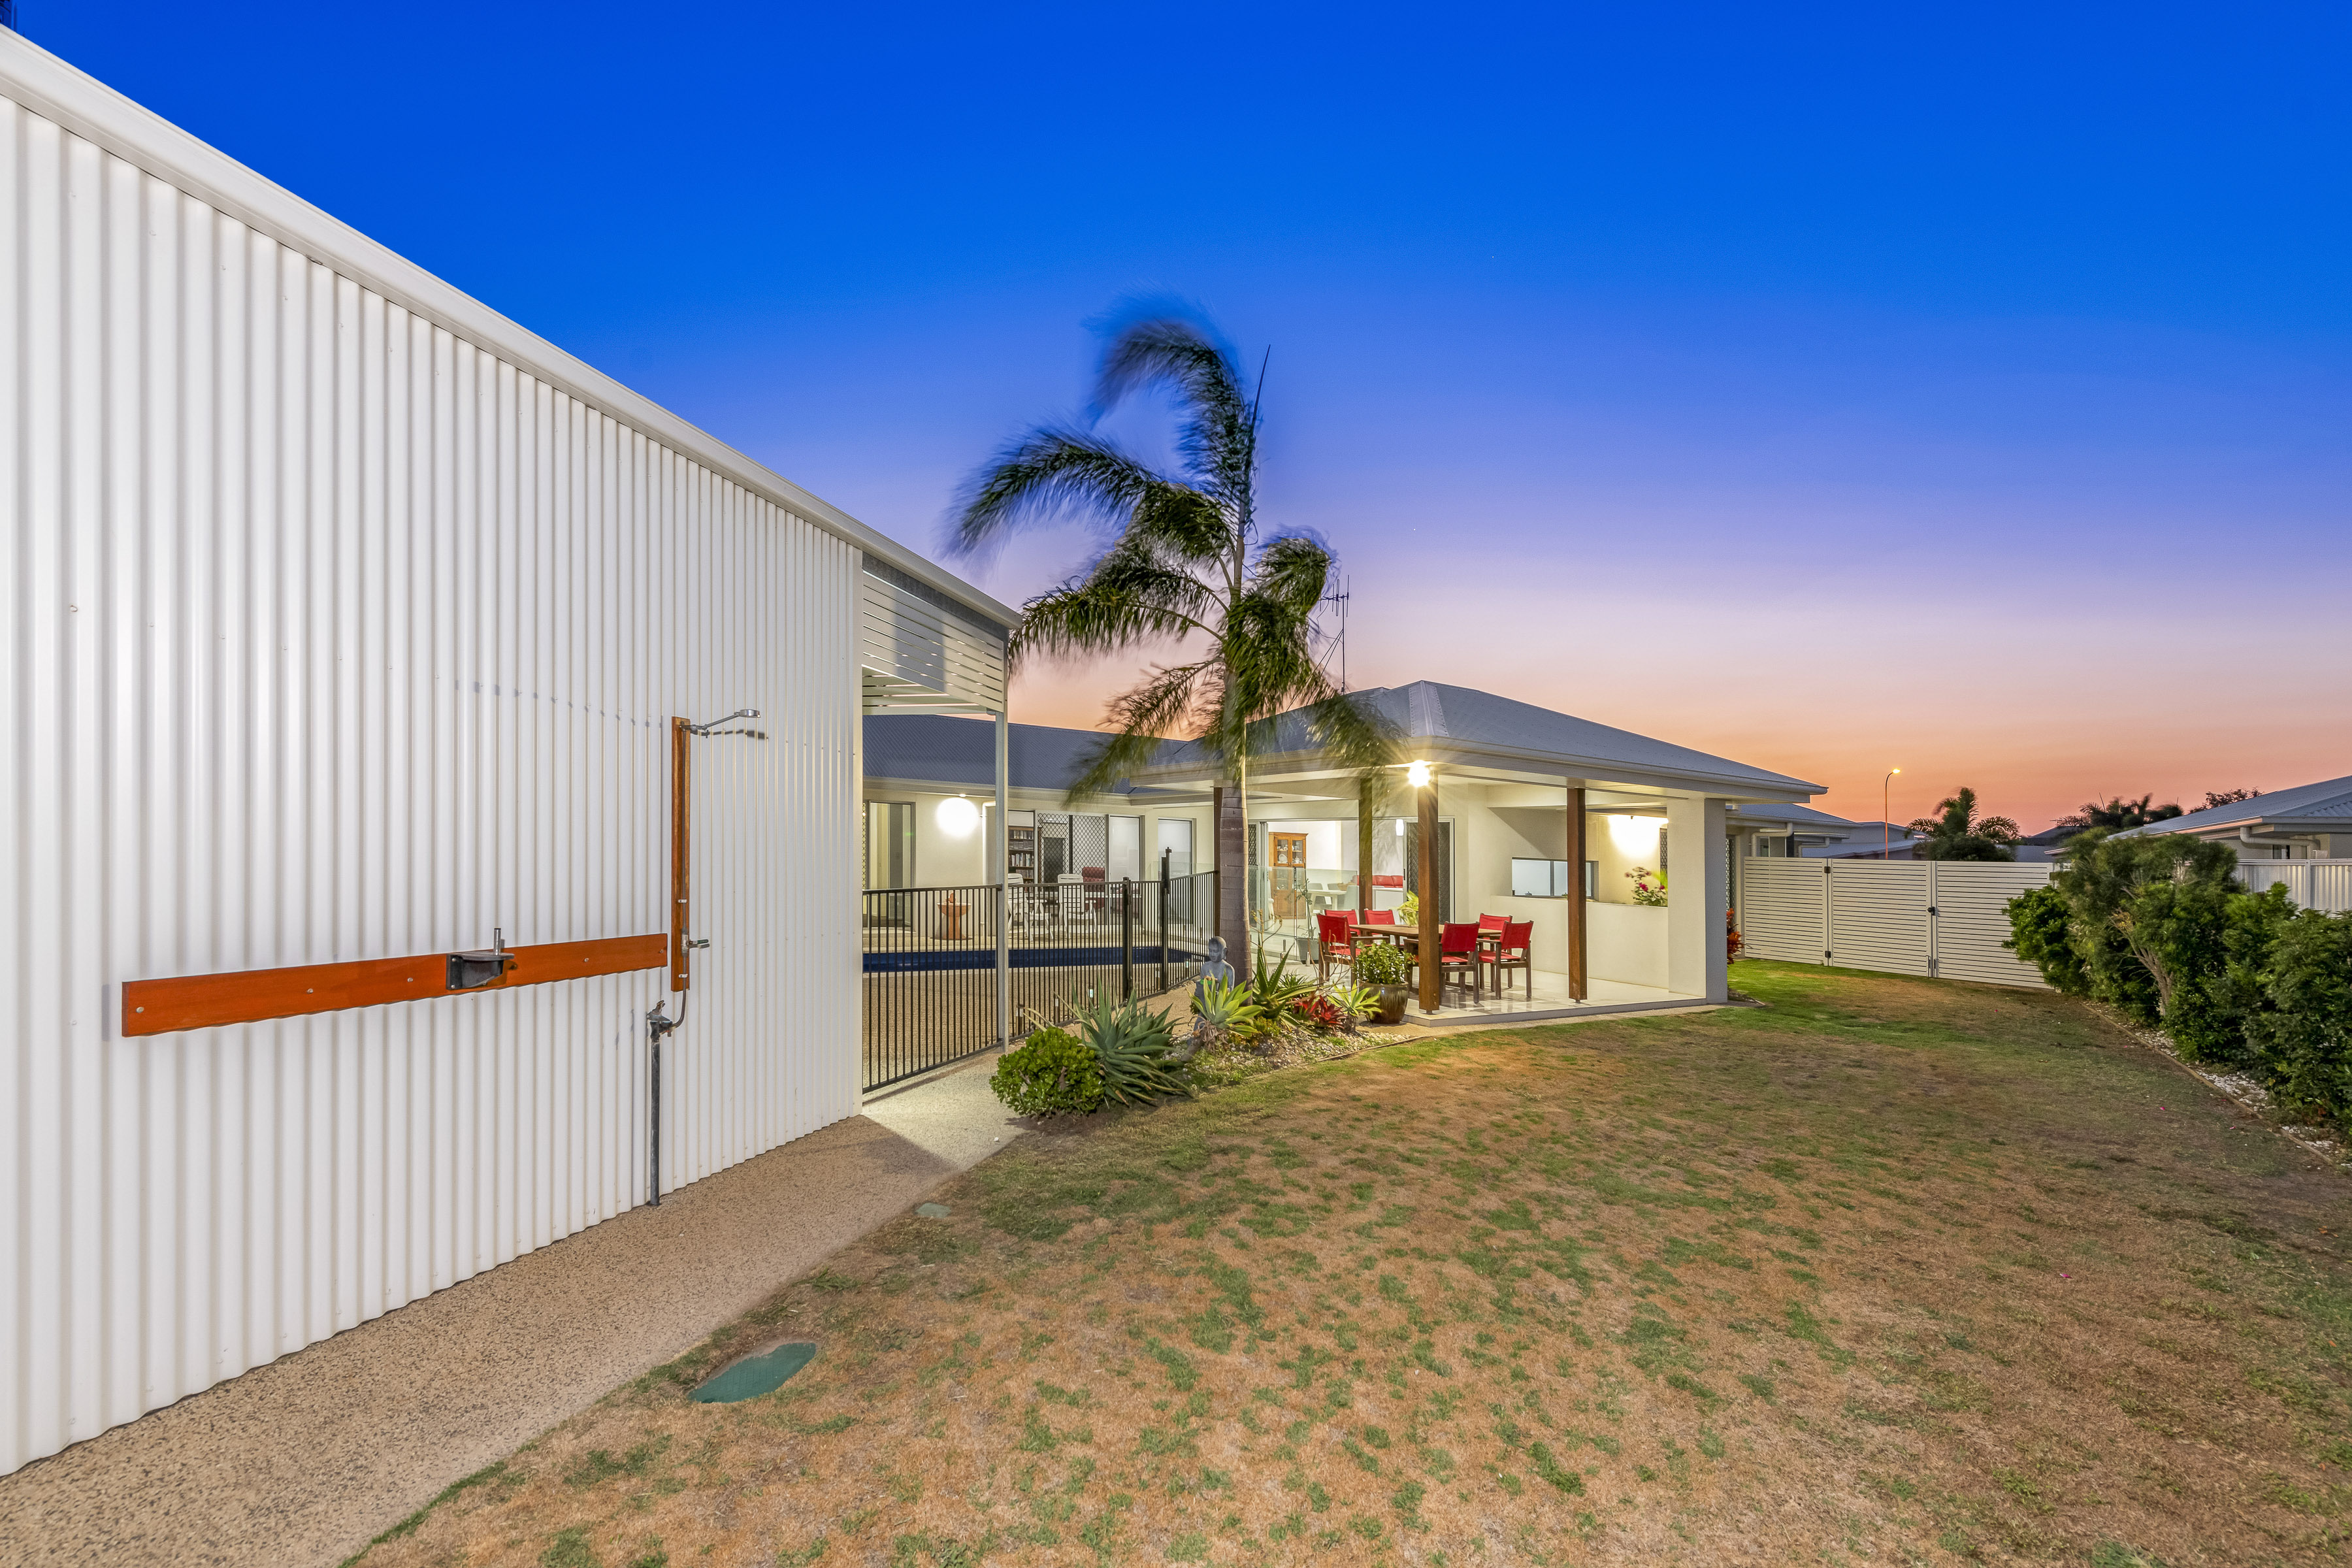 Right Image Photography Bundaberg Central 0477 033 515